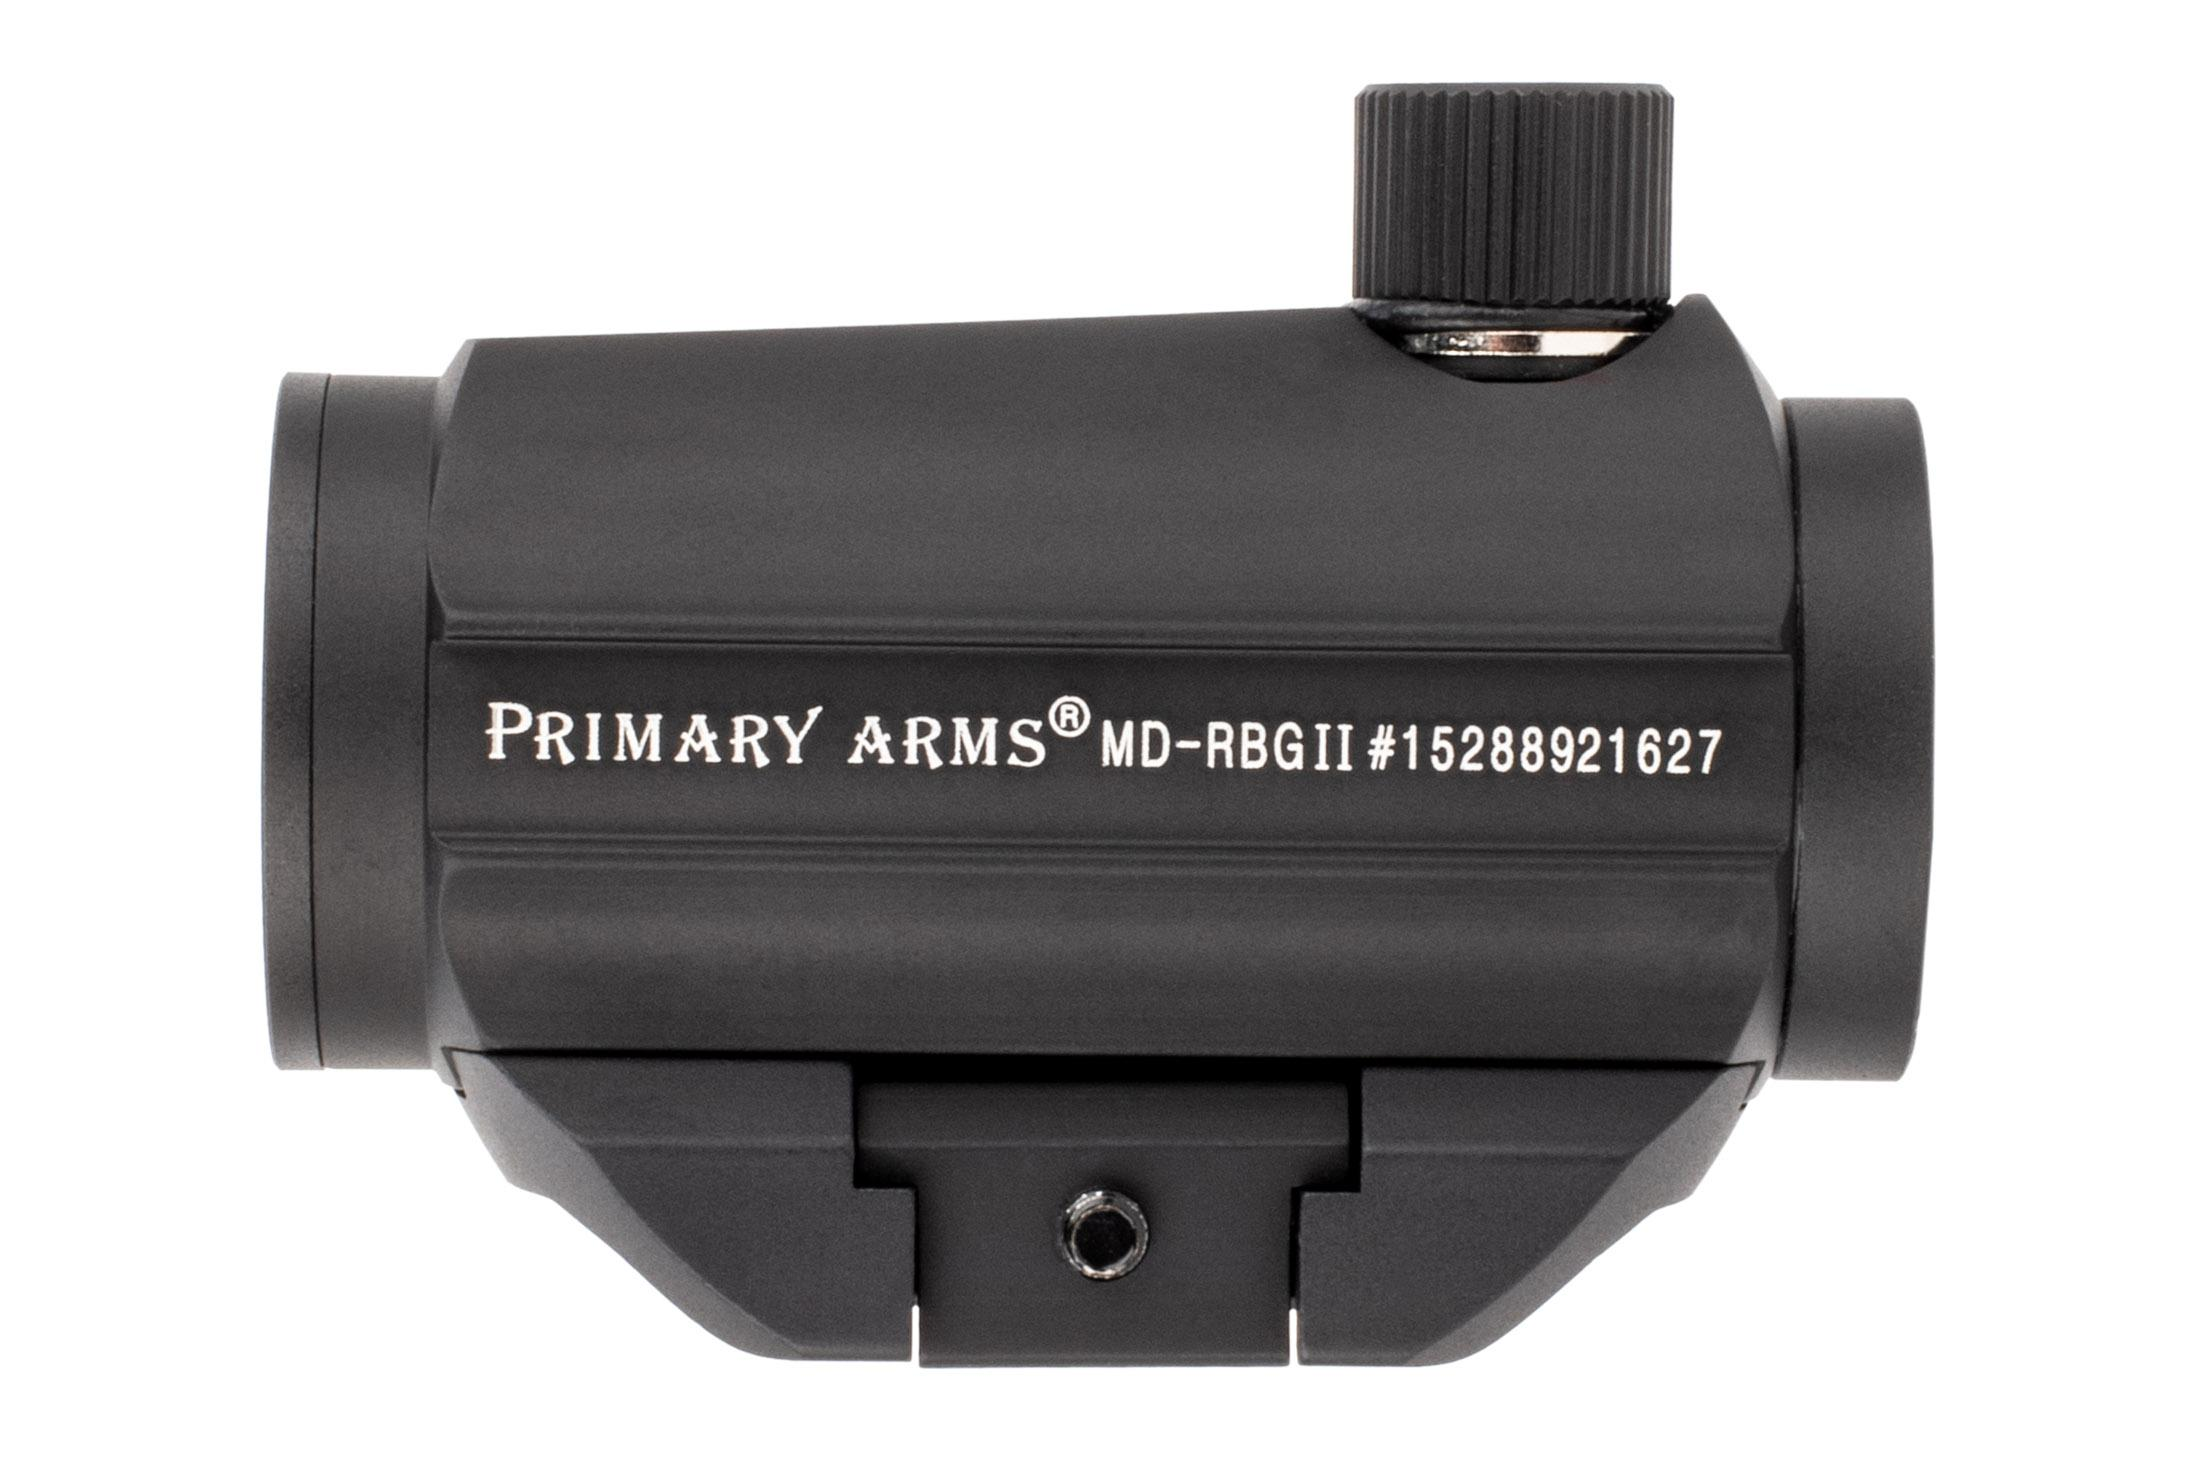 The primary arms red Dot sight features a removeable base and is made out of aluminum